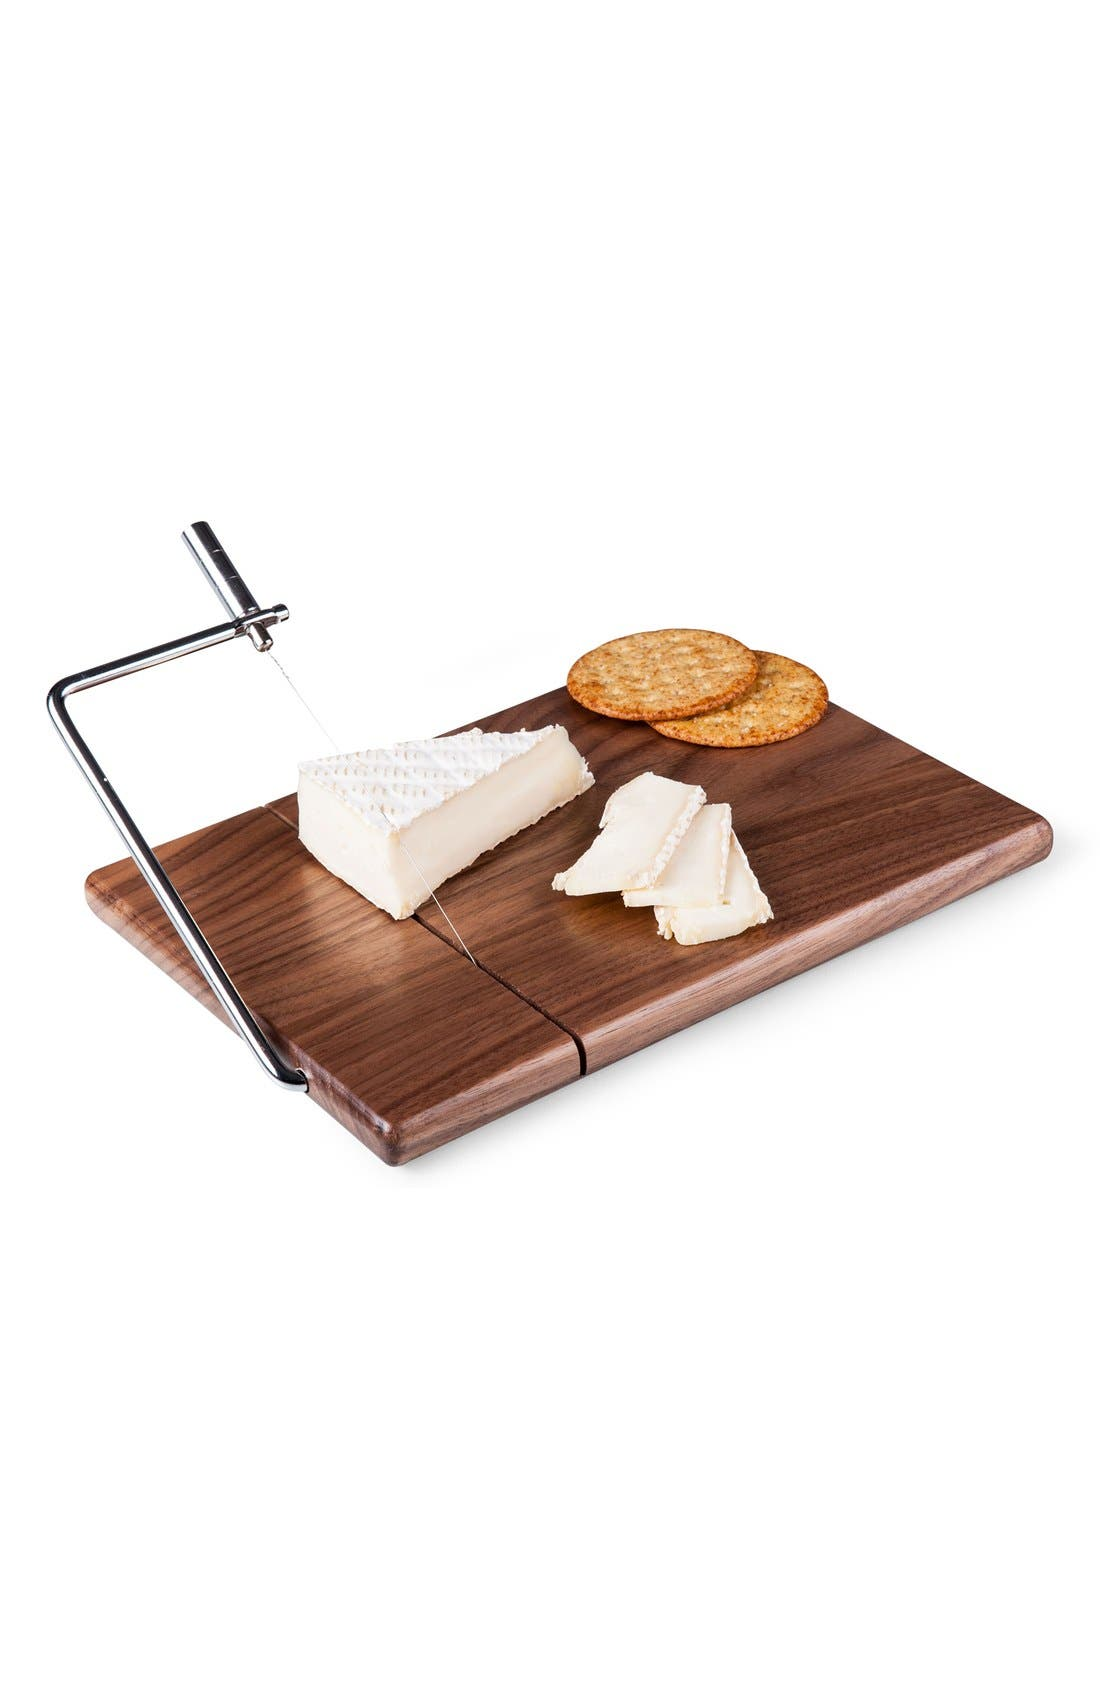 'Meridian' Black Walnut Cutting Board with Slicer,                         Main,                         color, Black